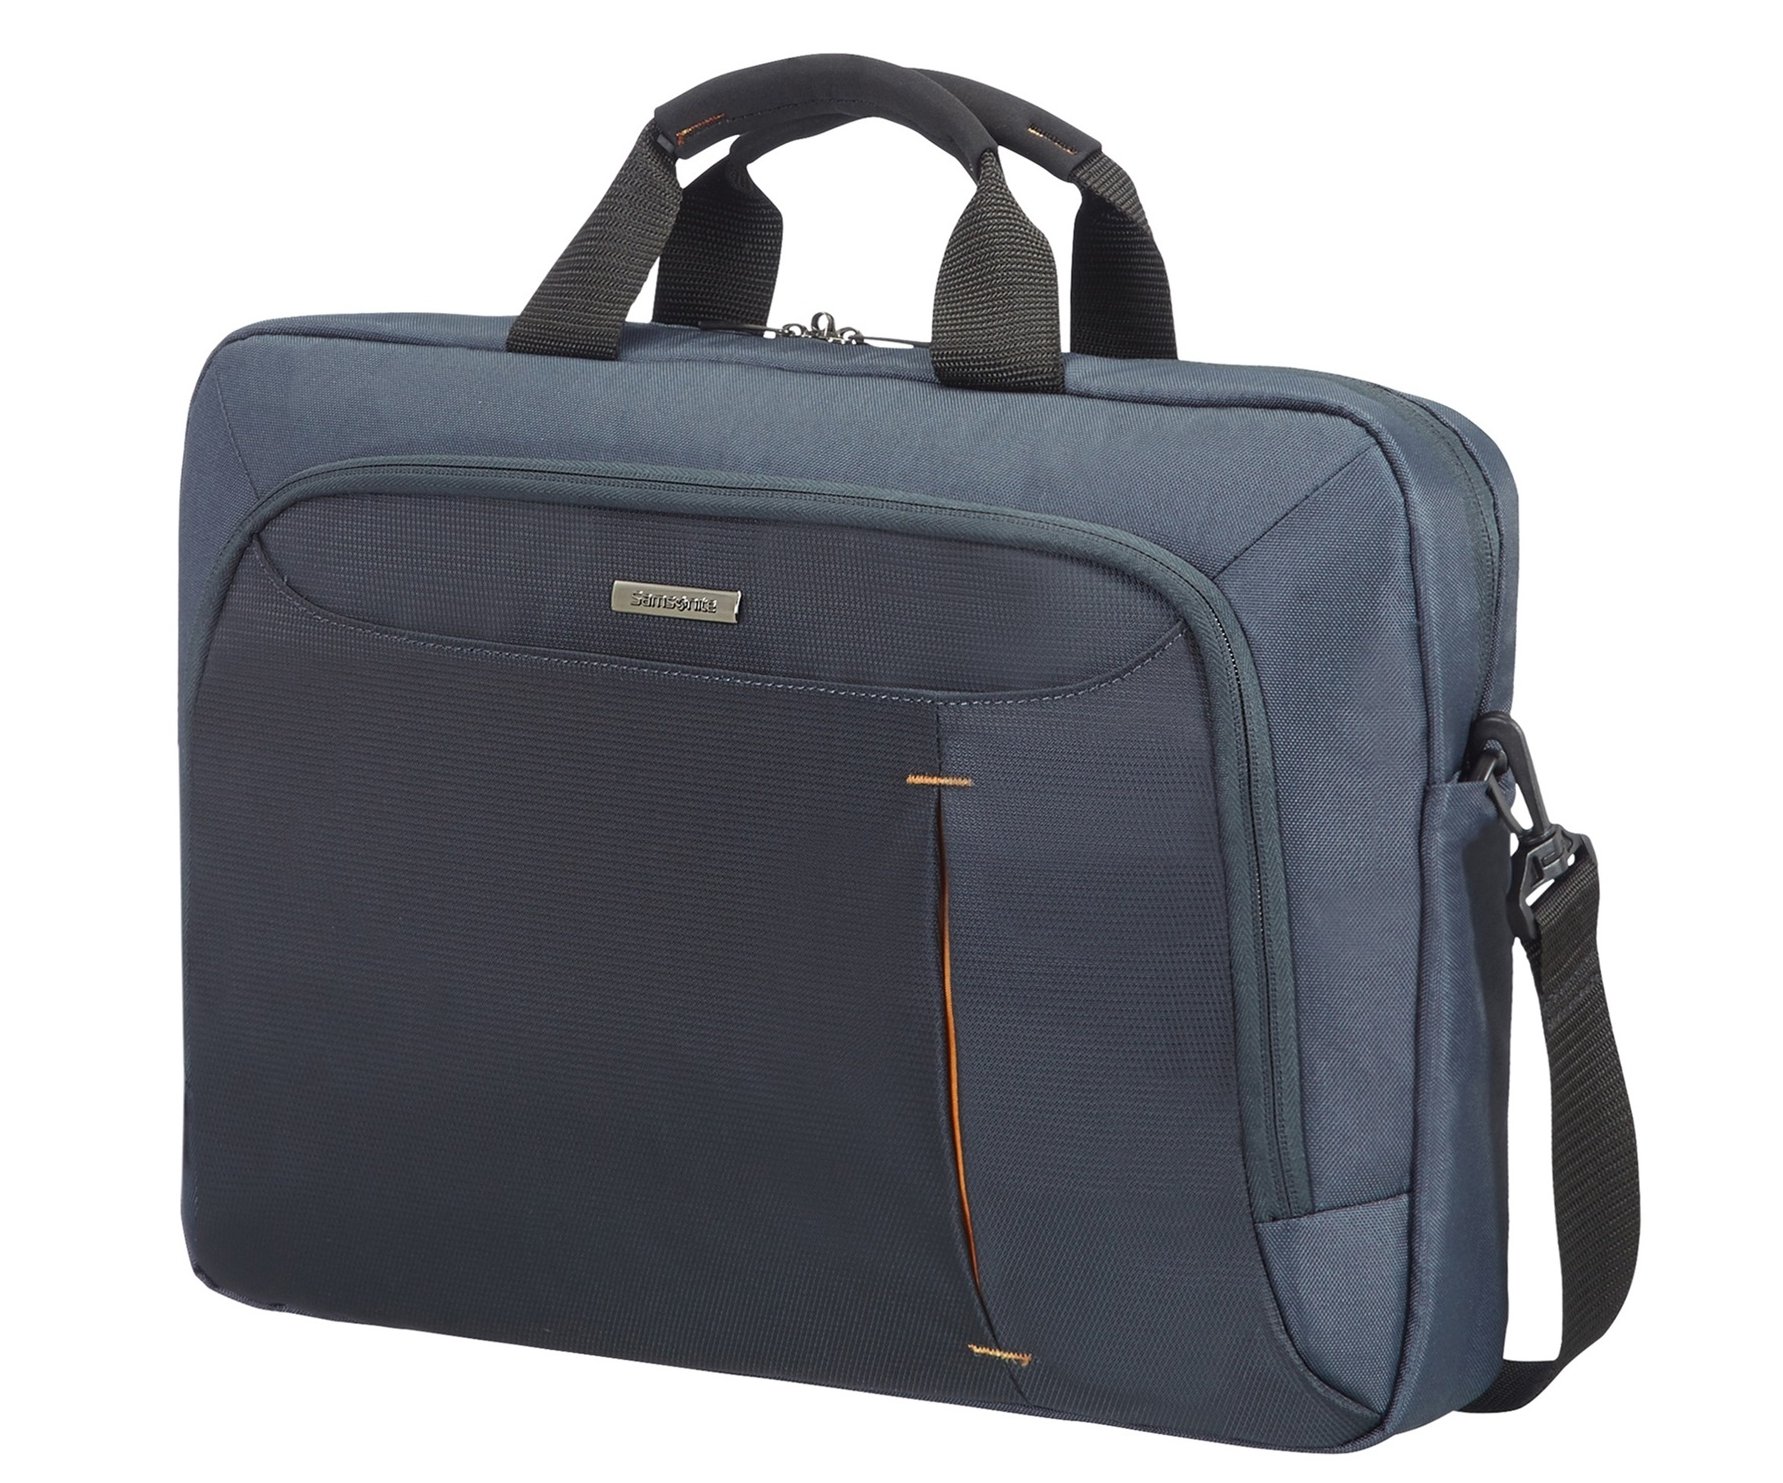 SAMSONITE - BORSE NOTEBOOK - 5414847545269